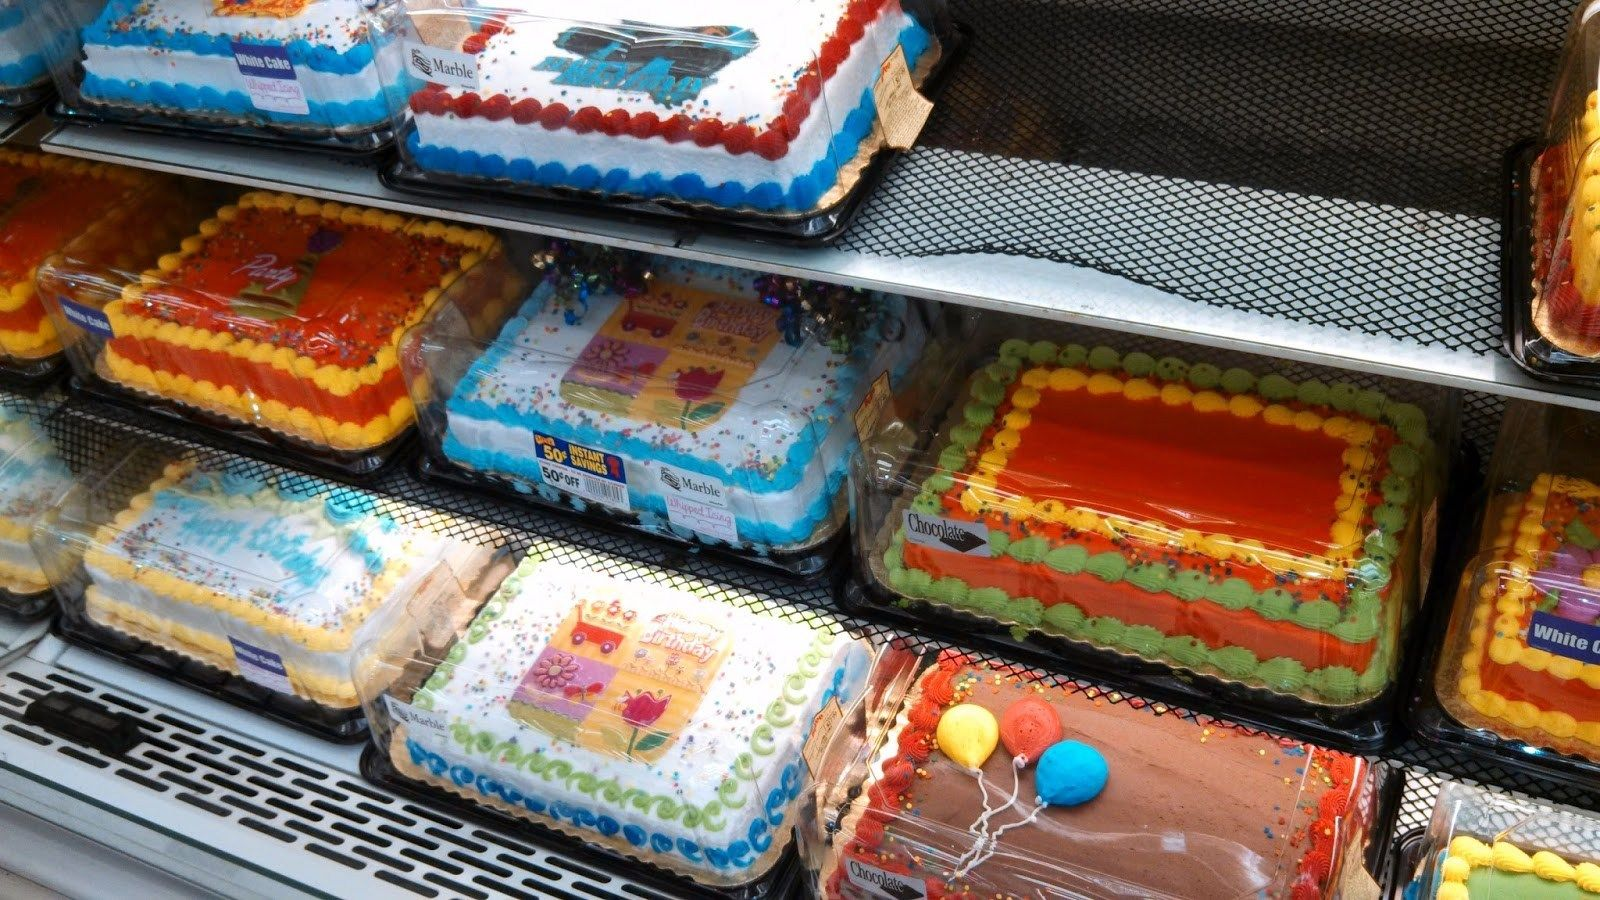 23 Great Image Of Heb Birthday Cakes 11 Grocery Store Decorated Photo Bakery Sheet